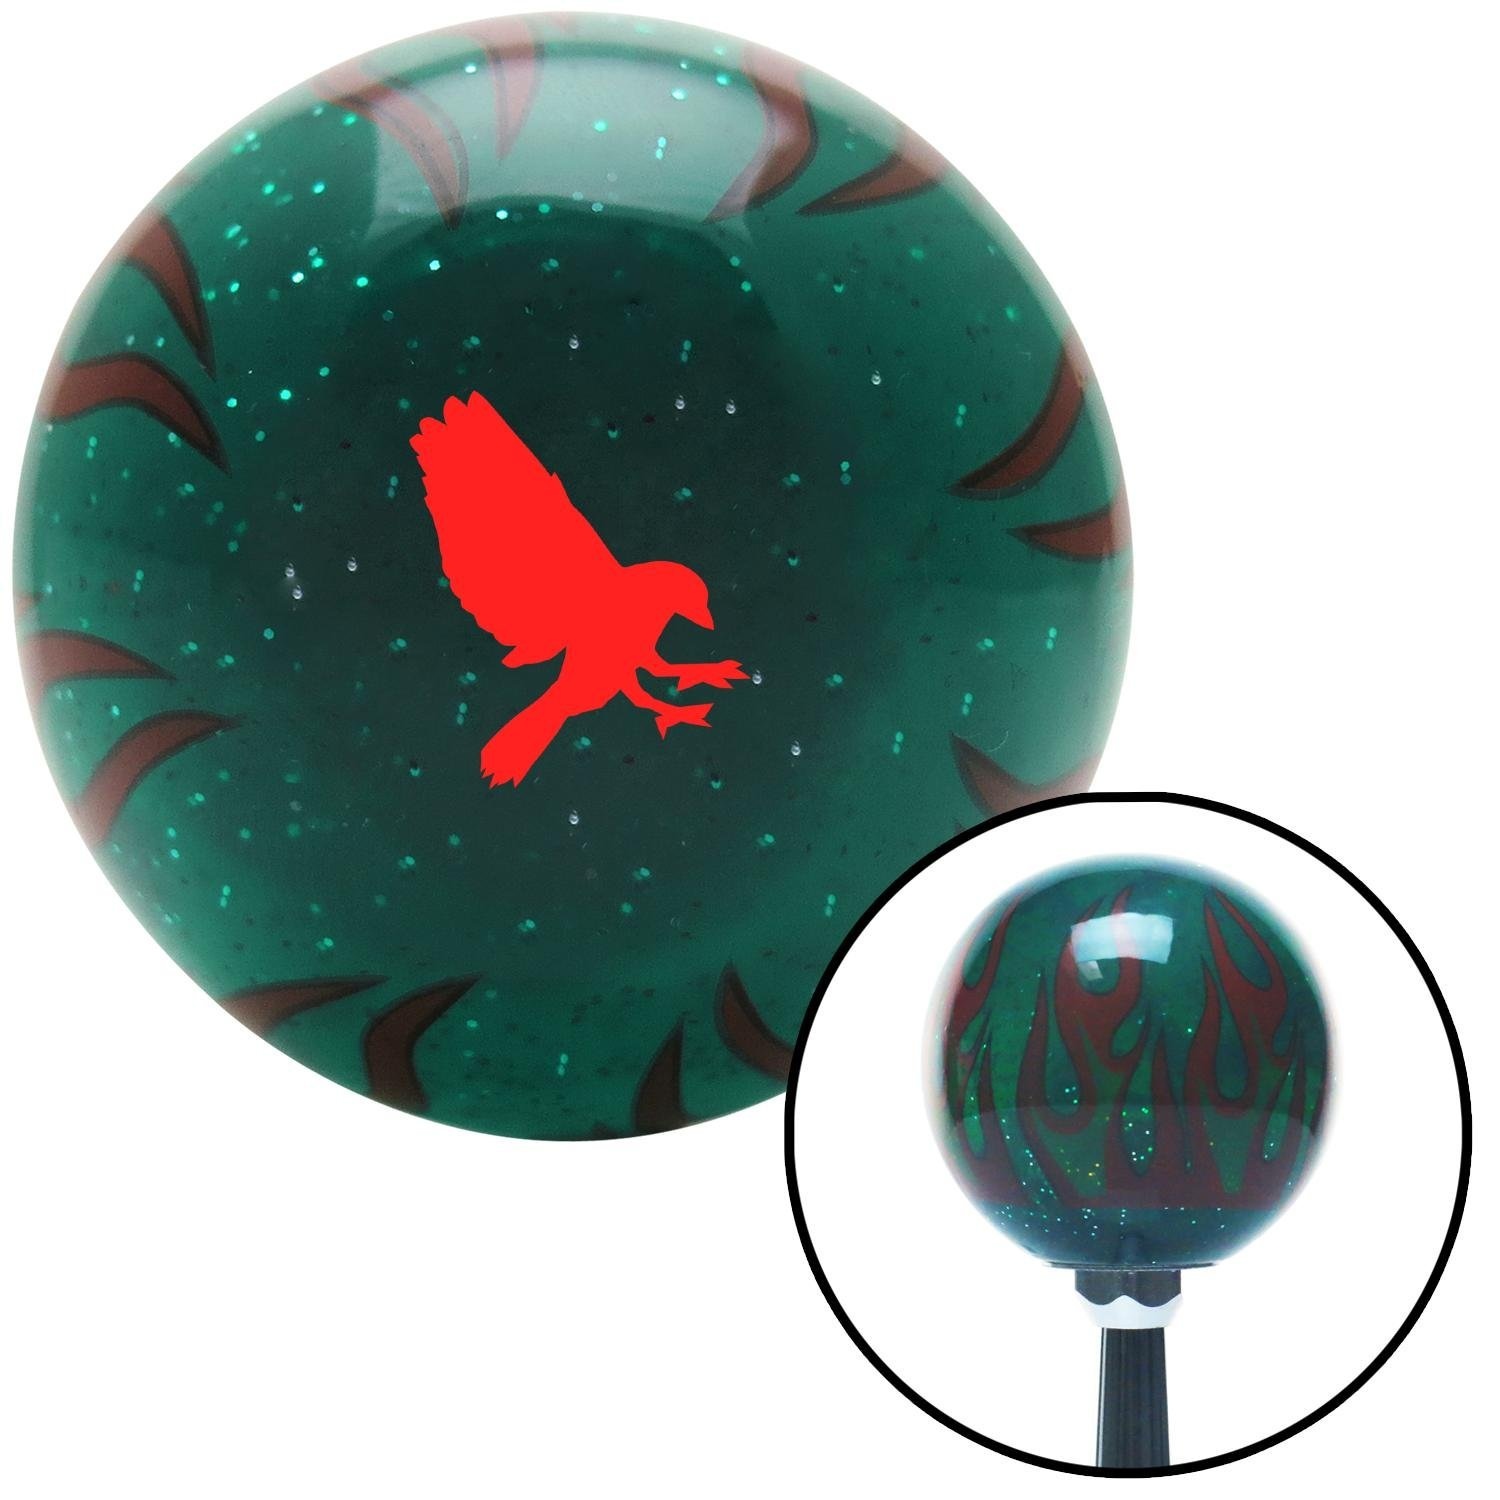 American Shifter 299865 Shift Knob Red Crow Green Flame Metal Flake with M16 x 1.5 Insert